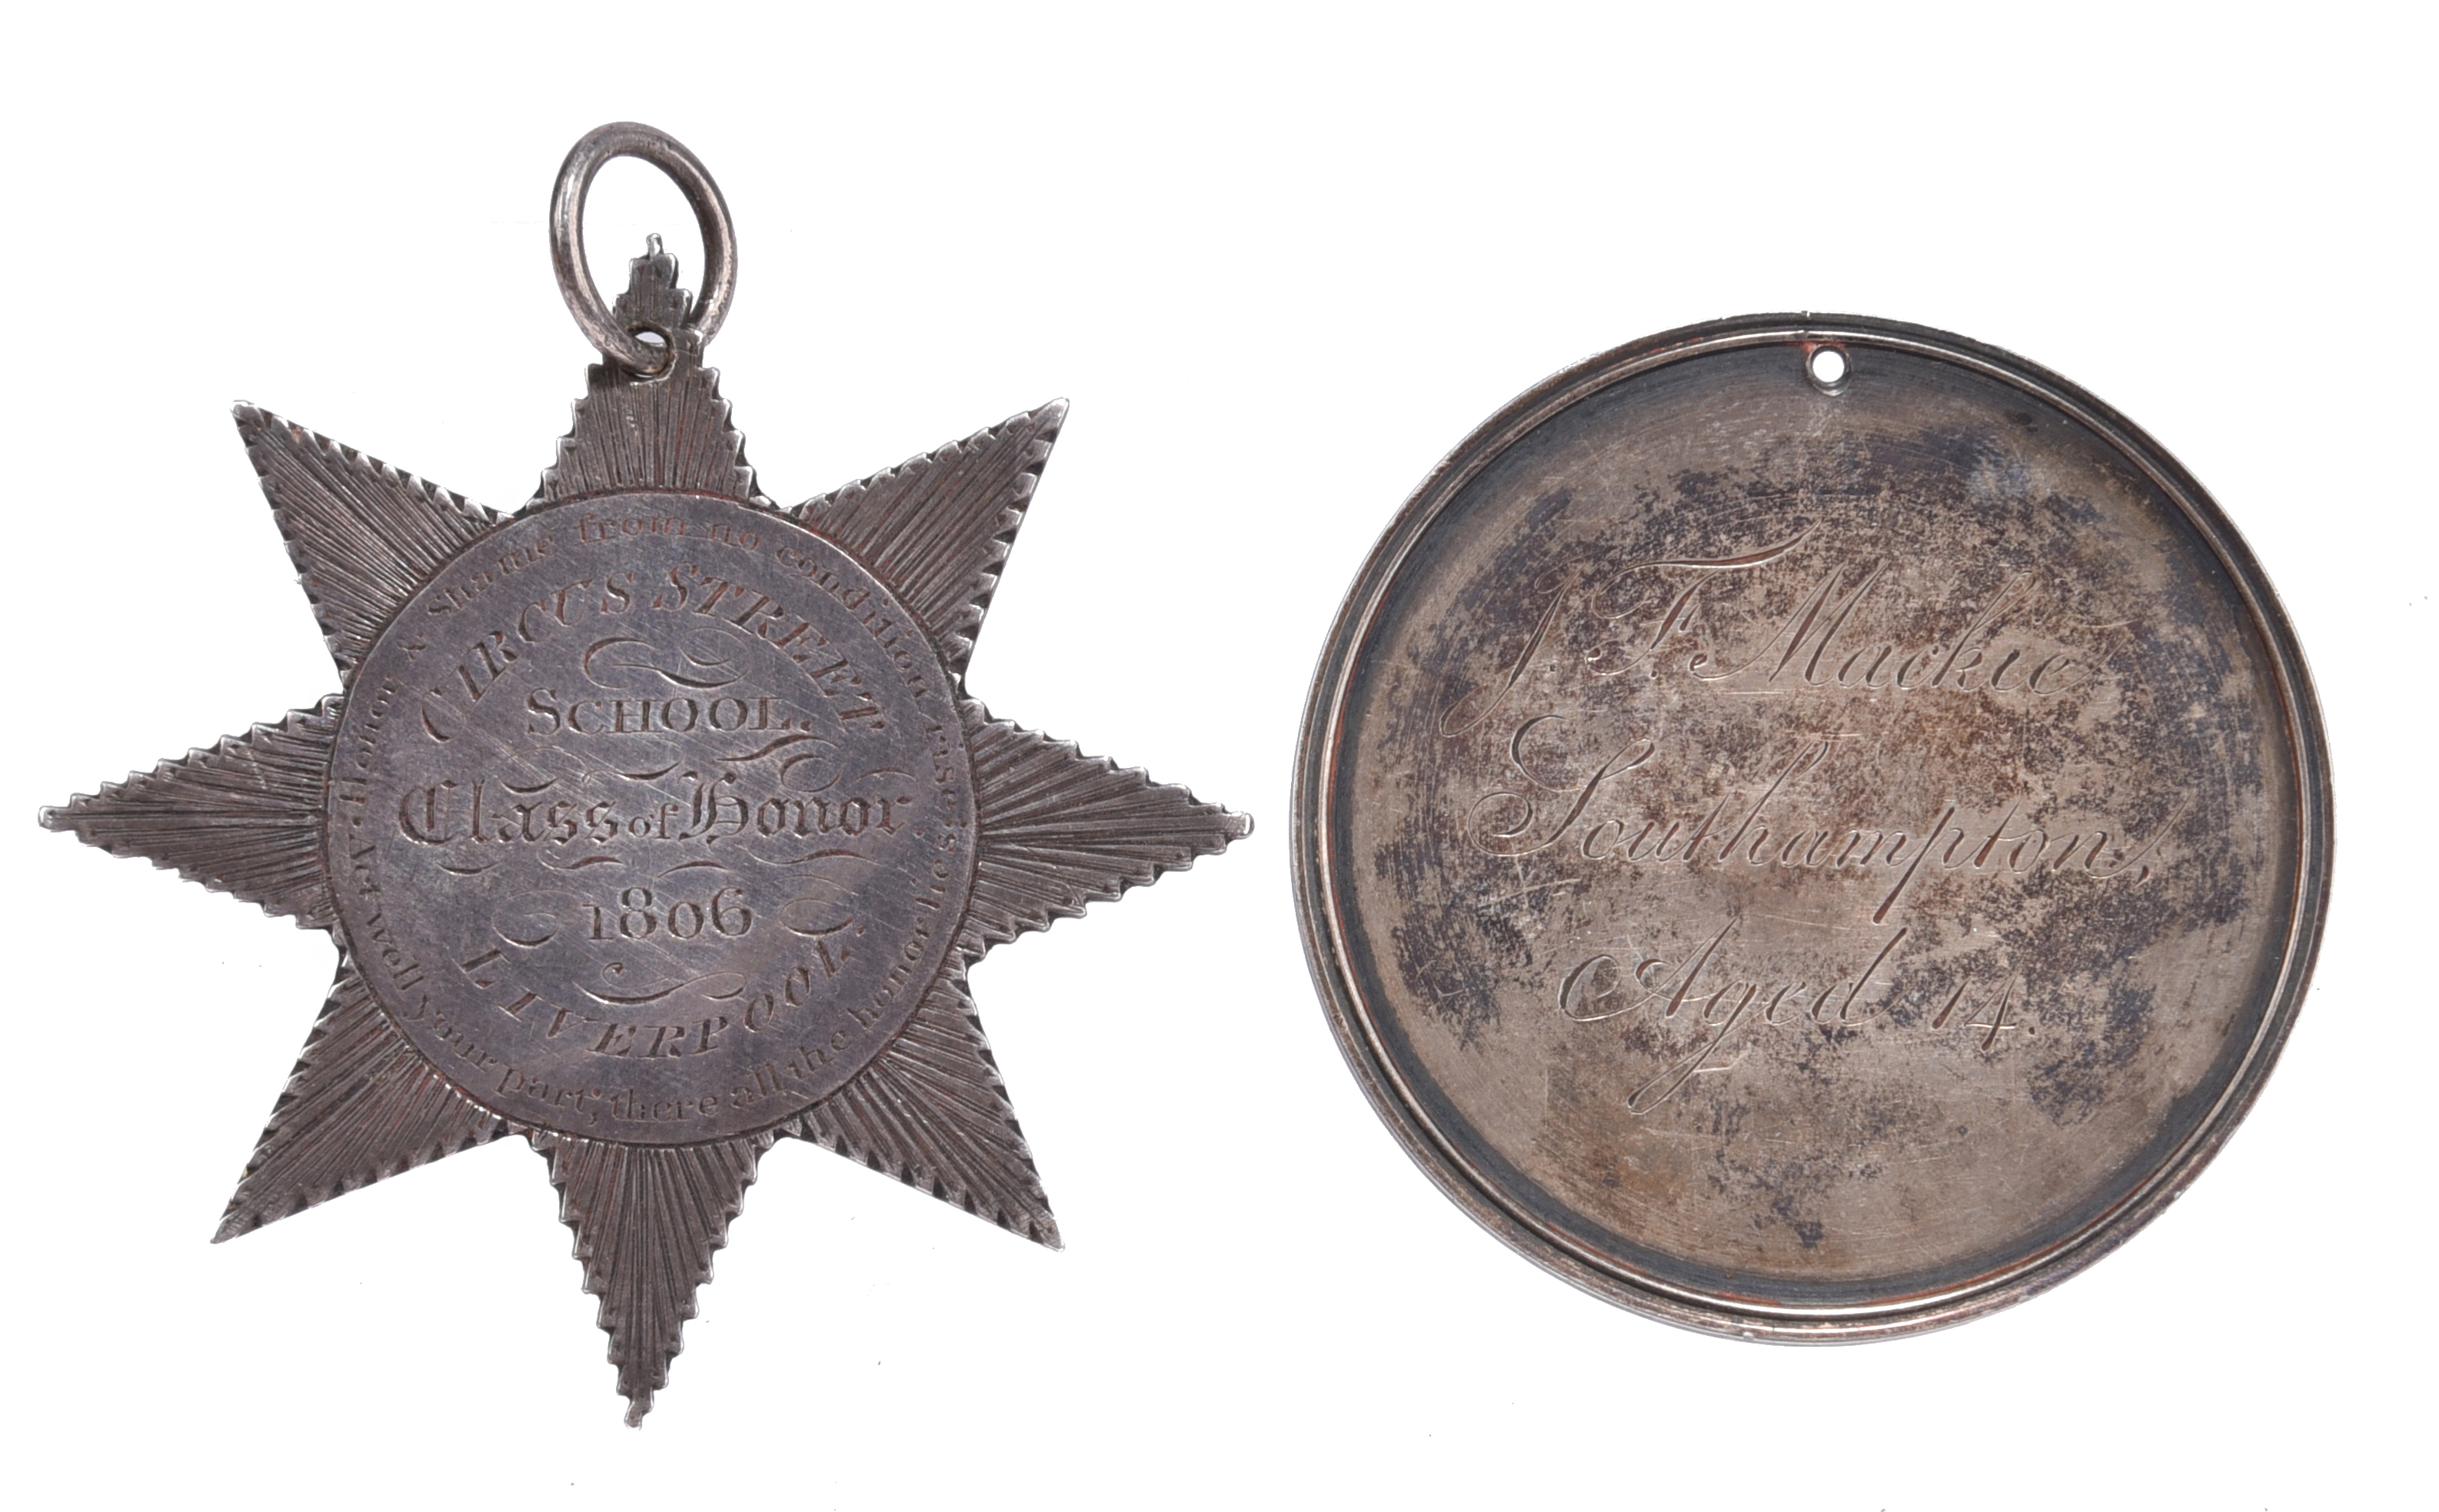 Education: two English engraved silver medals: Circus Street School Liverpool Class of Honour